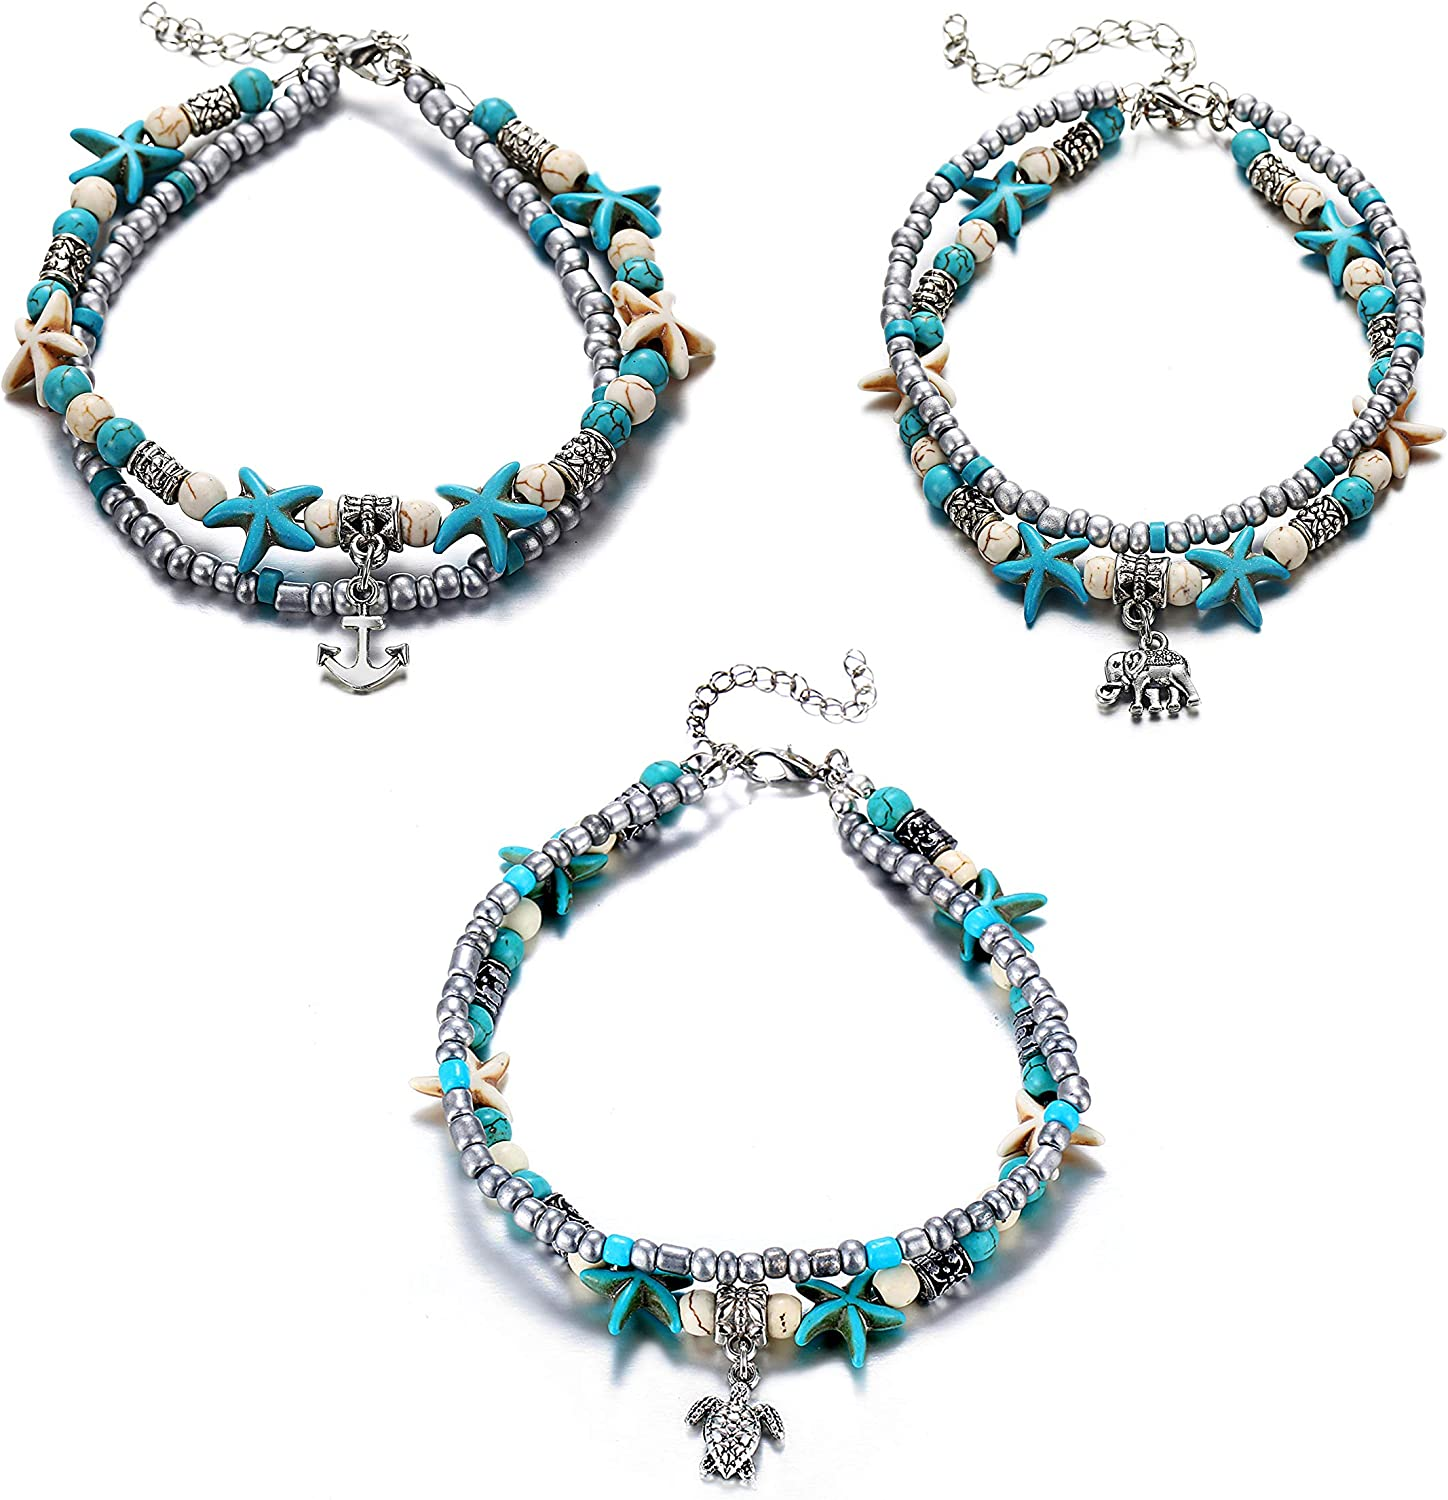 3 pcs Set Simulated Turquoise Blue Starfish Multilayer Yoga Beach Anklets Bracelet Boho Foot Jewelry for Women Teen Girls Y811